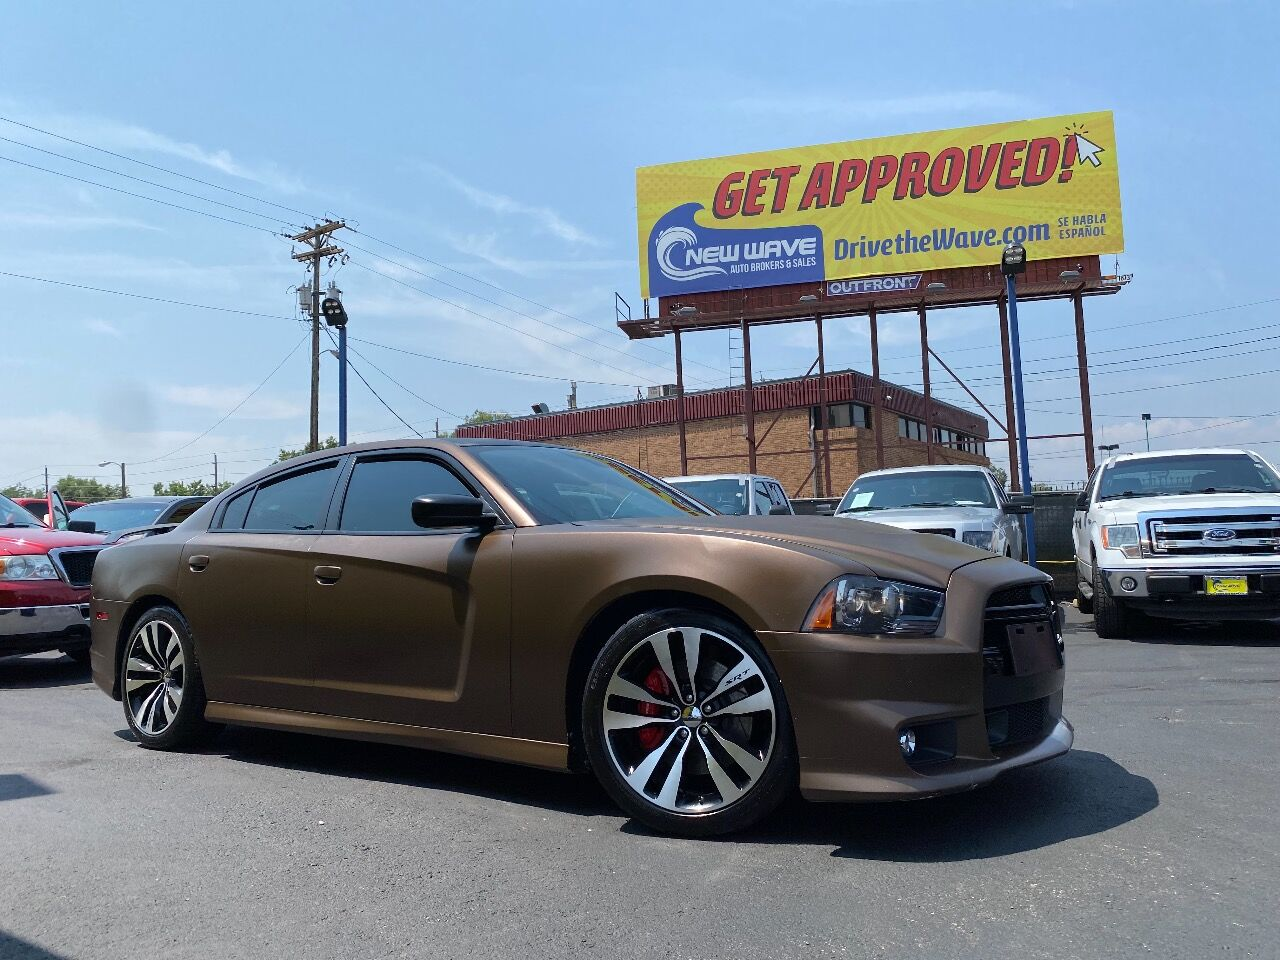 used 2013 Dodge Charger car